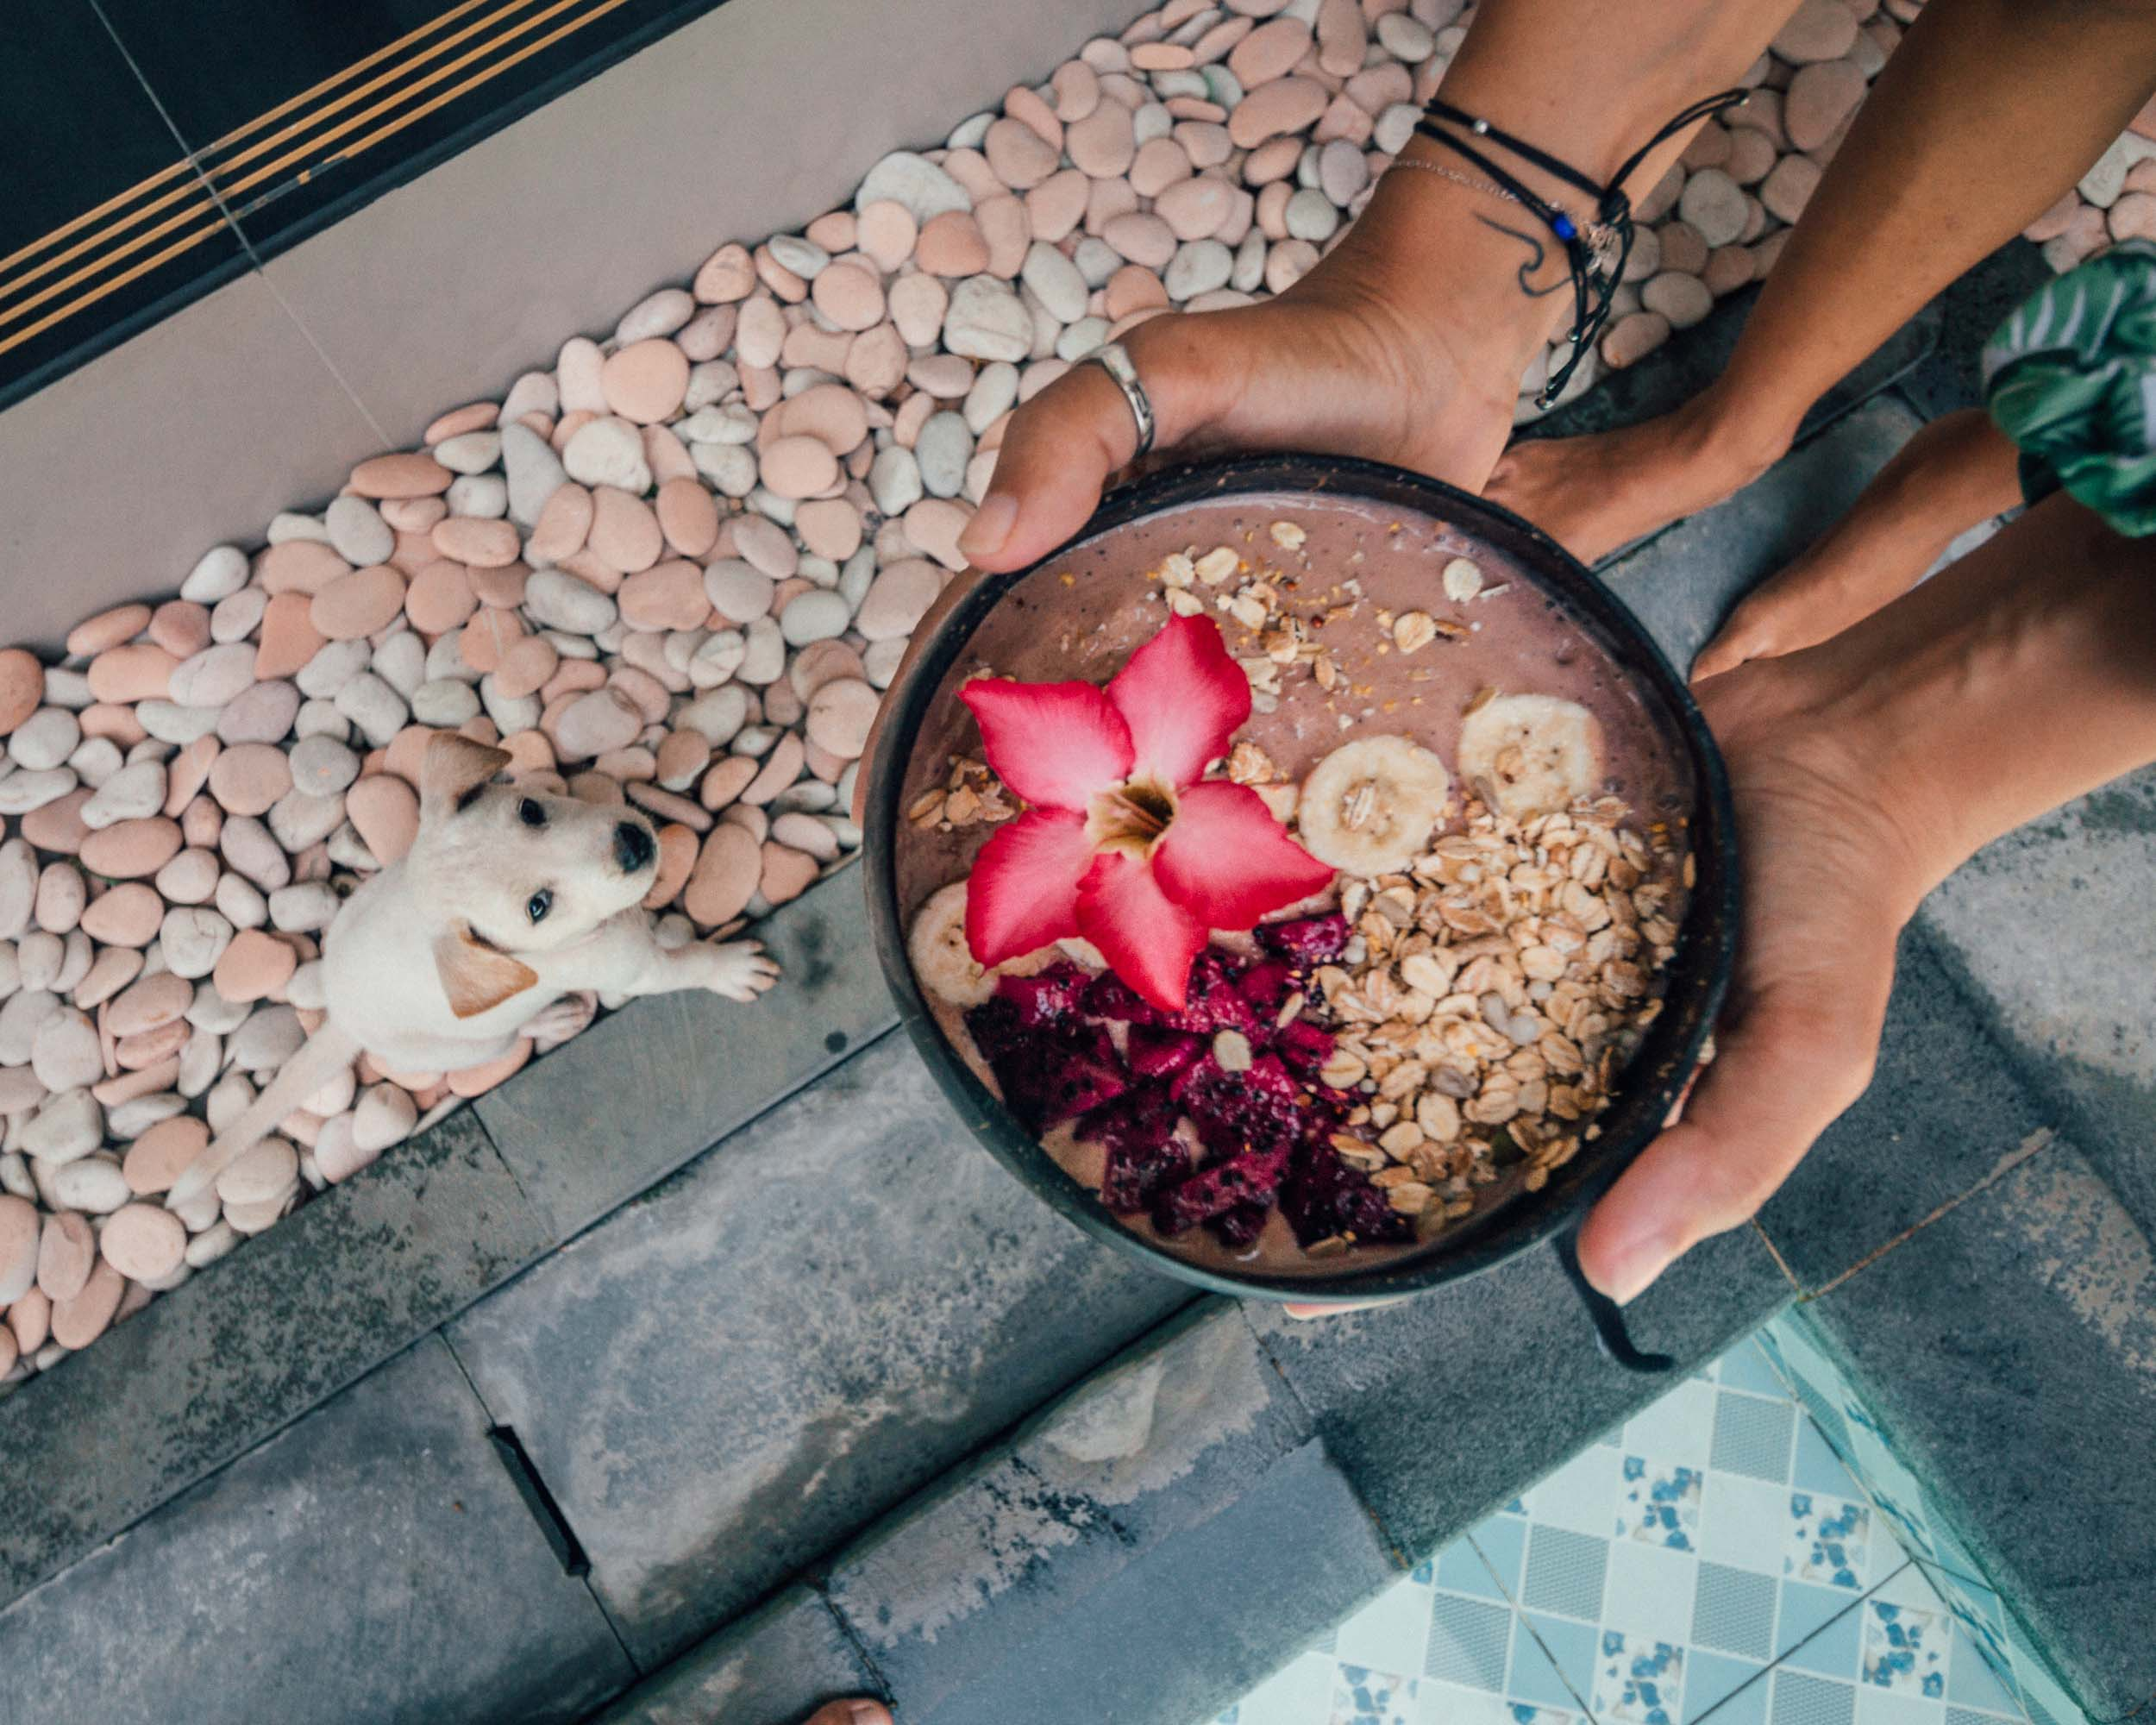 The best coworking space in Bali surfing nomads digital remote work community smoothie bowls and puppies